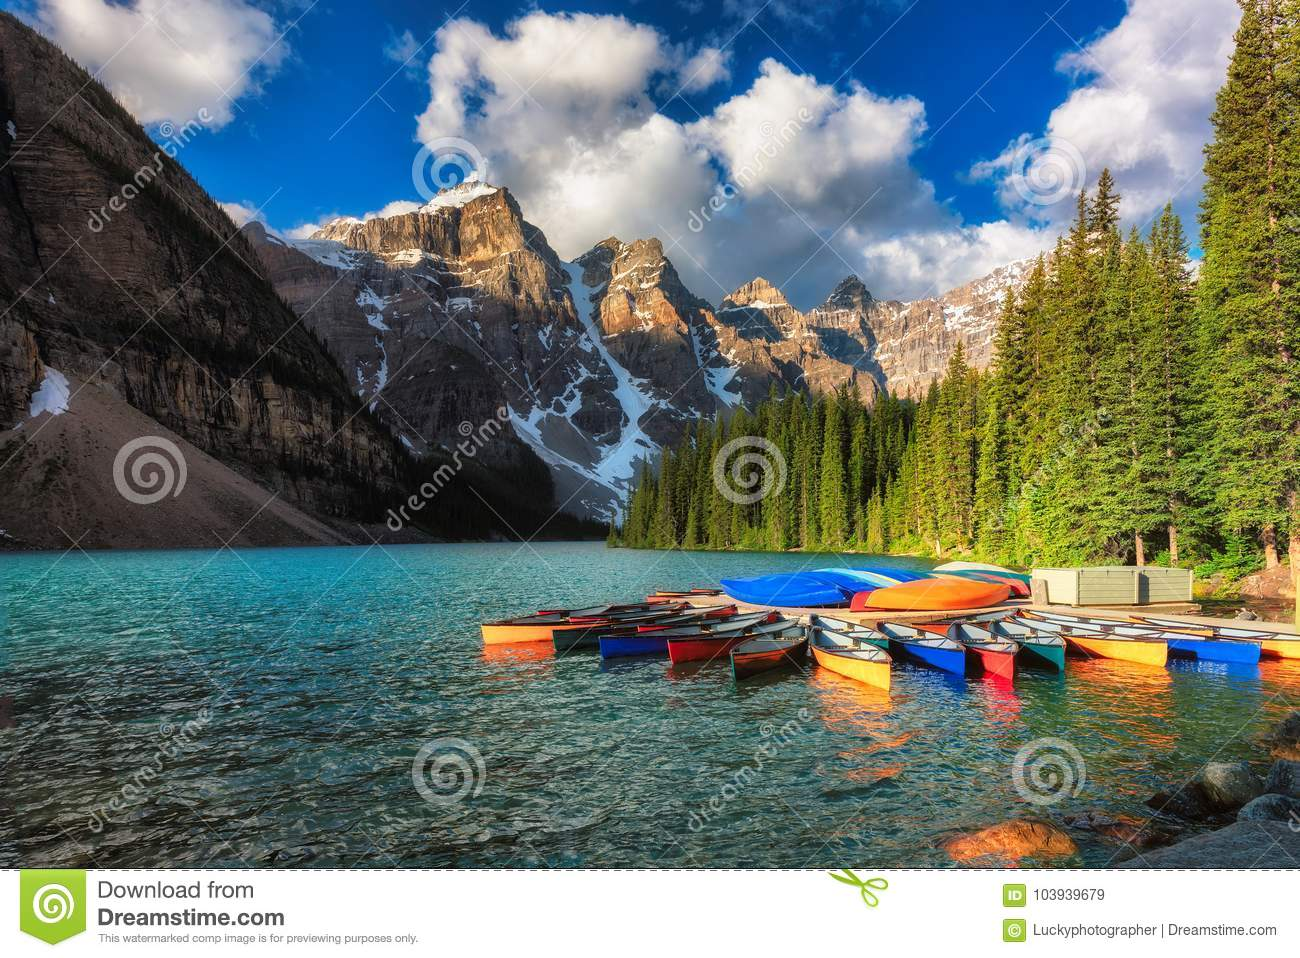 Download Canoes On Moraine Lake, Banff National Park In The Rocky Mountains, Alberta, Canada. Stock Image - Image of above, beautiful: 103939679